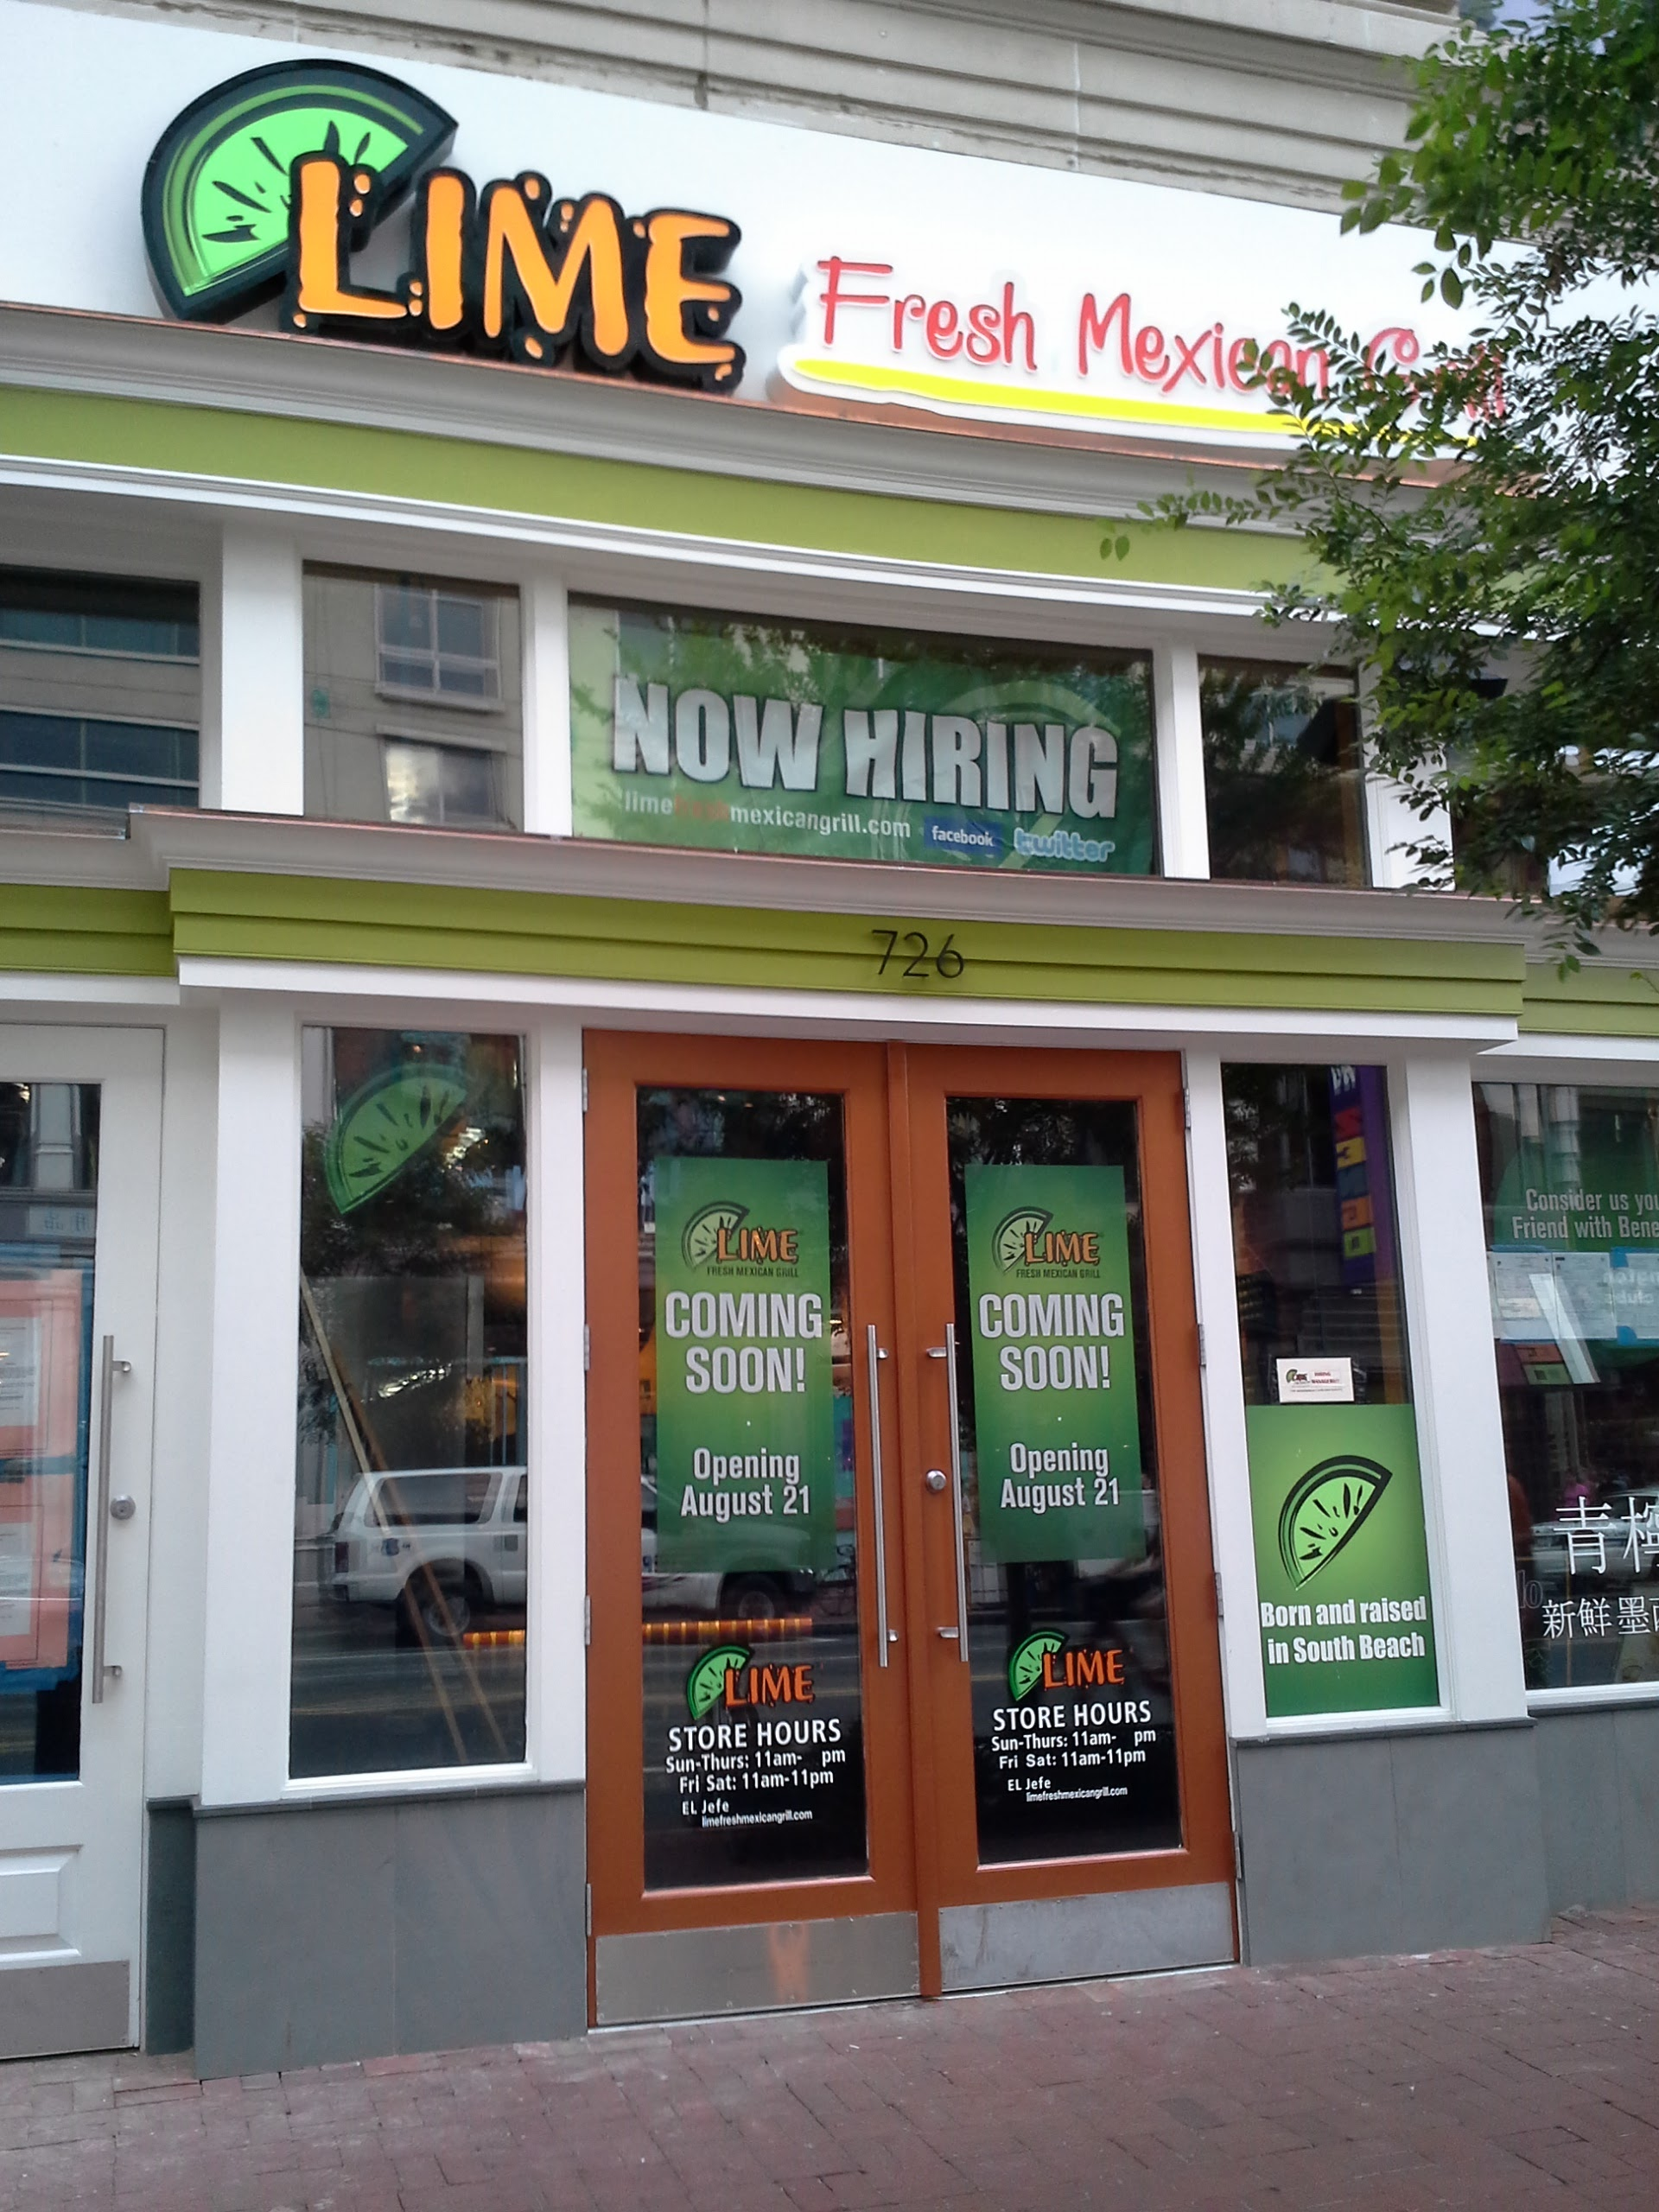 Lime Fresh Mexican Grill 726 7th St NW Washington DC - Exterior